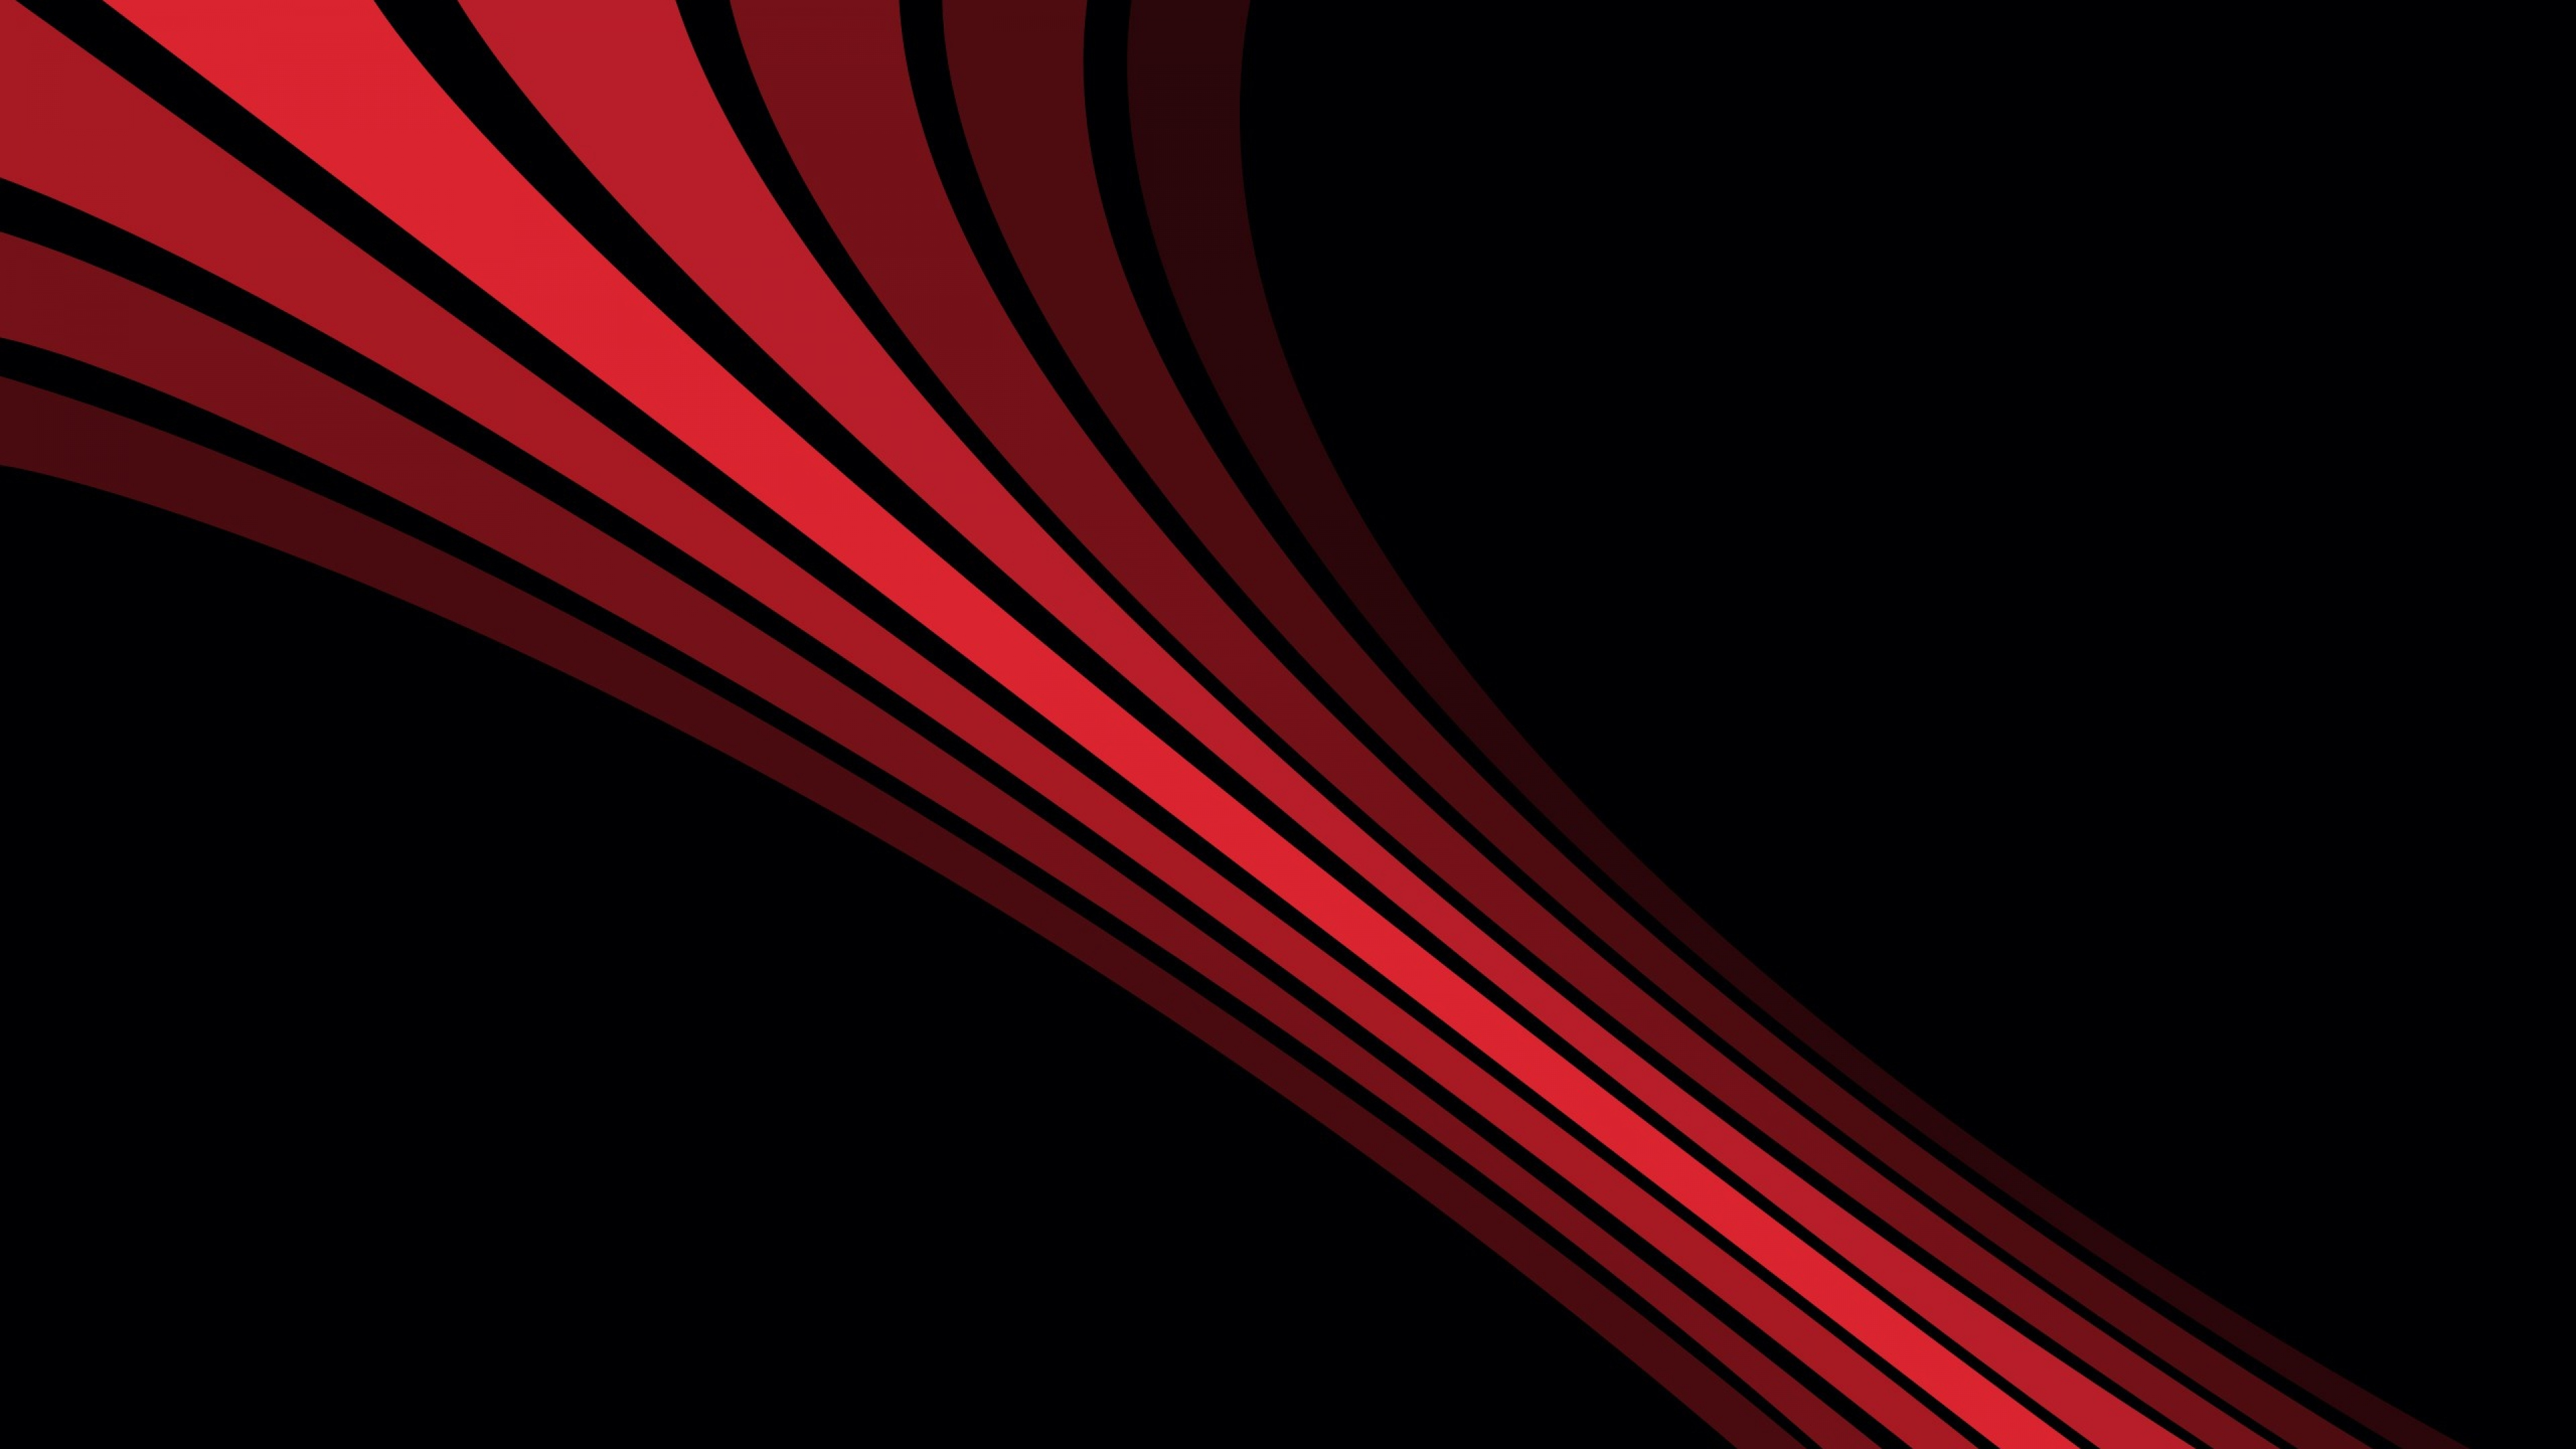 Red and Black 4K Wallpaper - WallpaperSafari